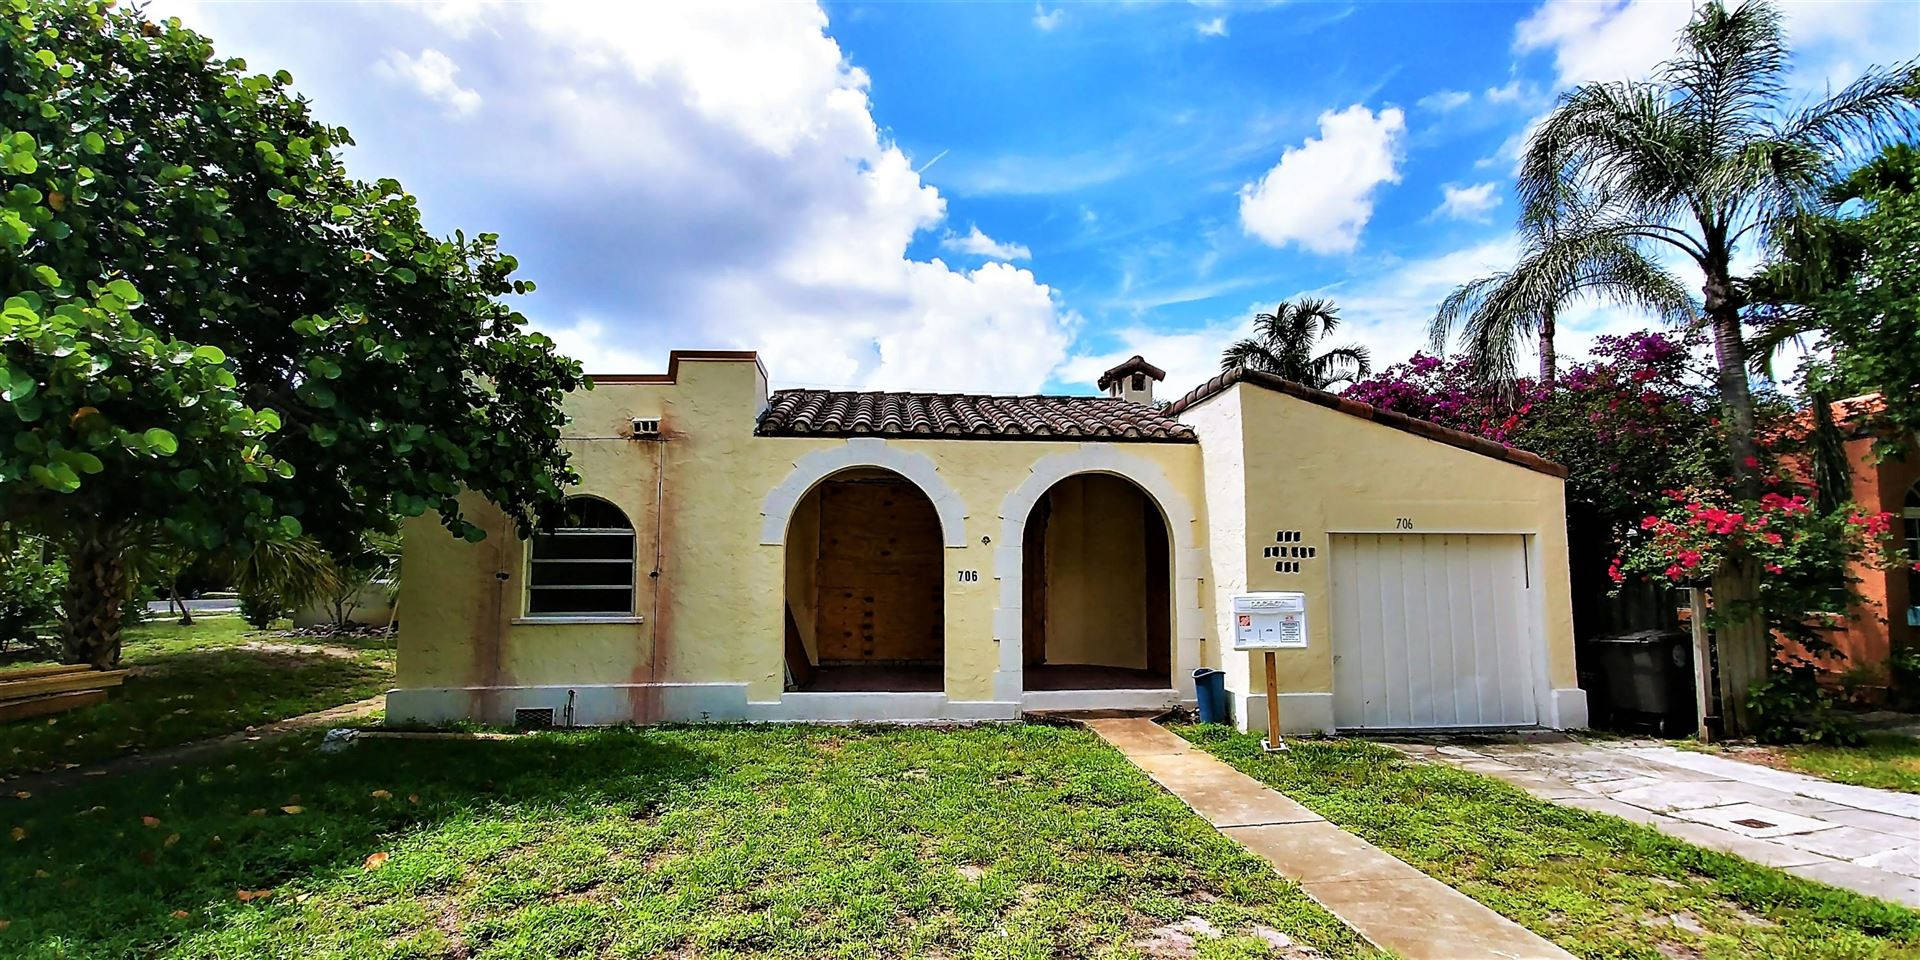 706 Sunset Road, West Palm Beach, FL 33401 - #: RX-10635846